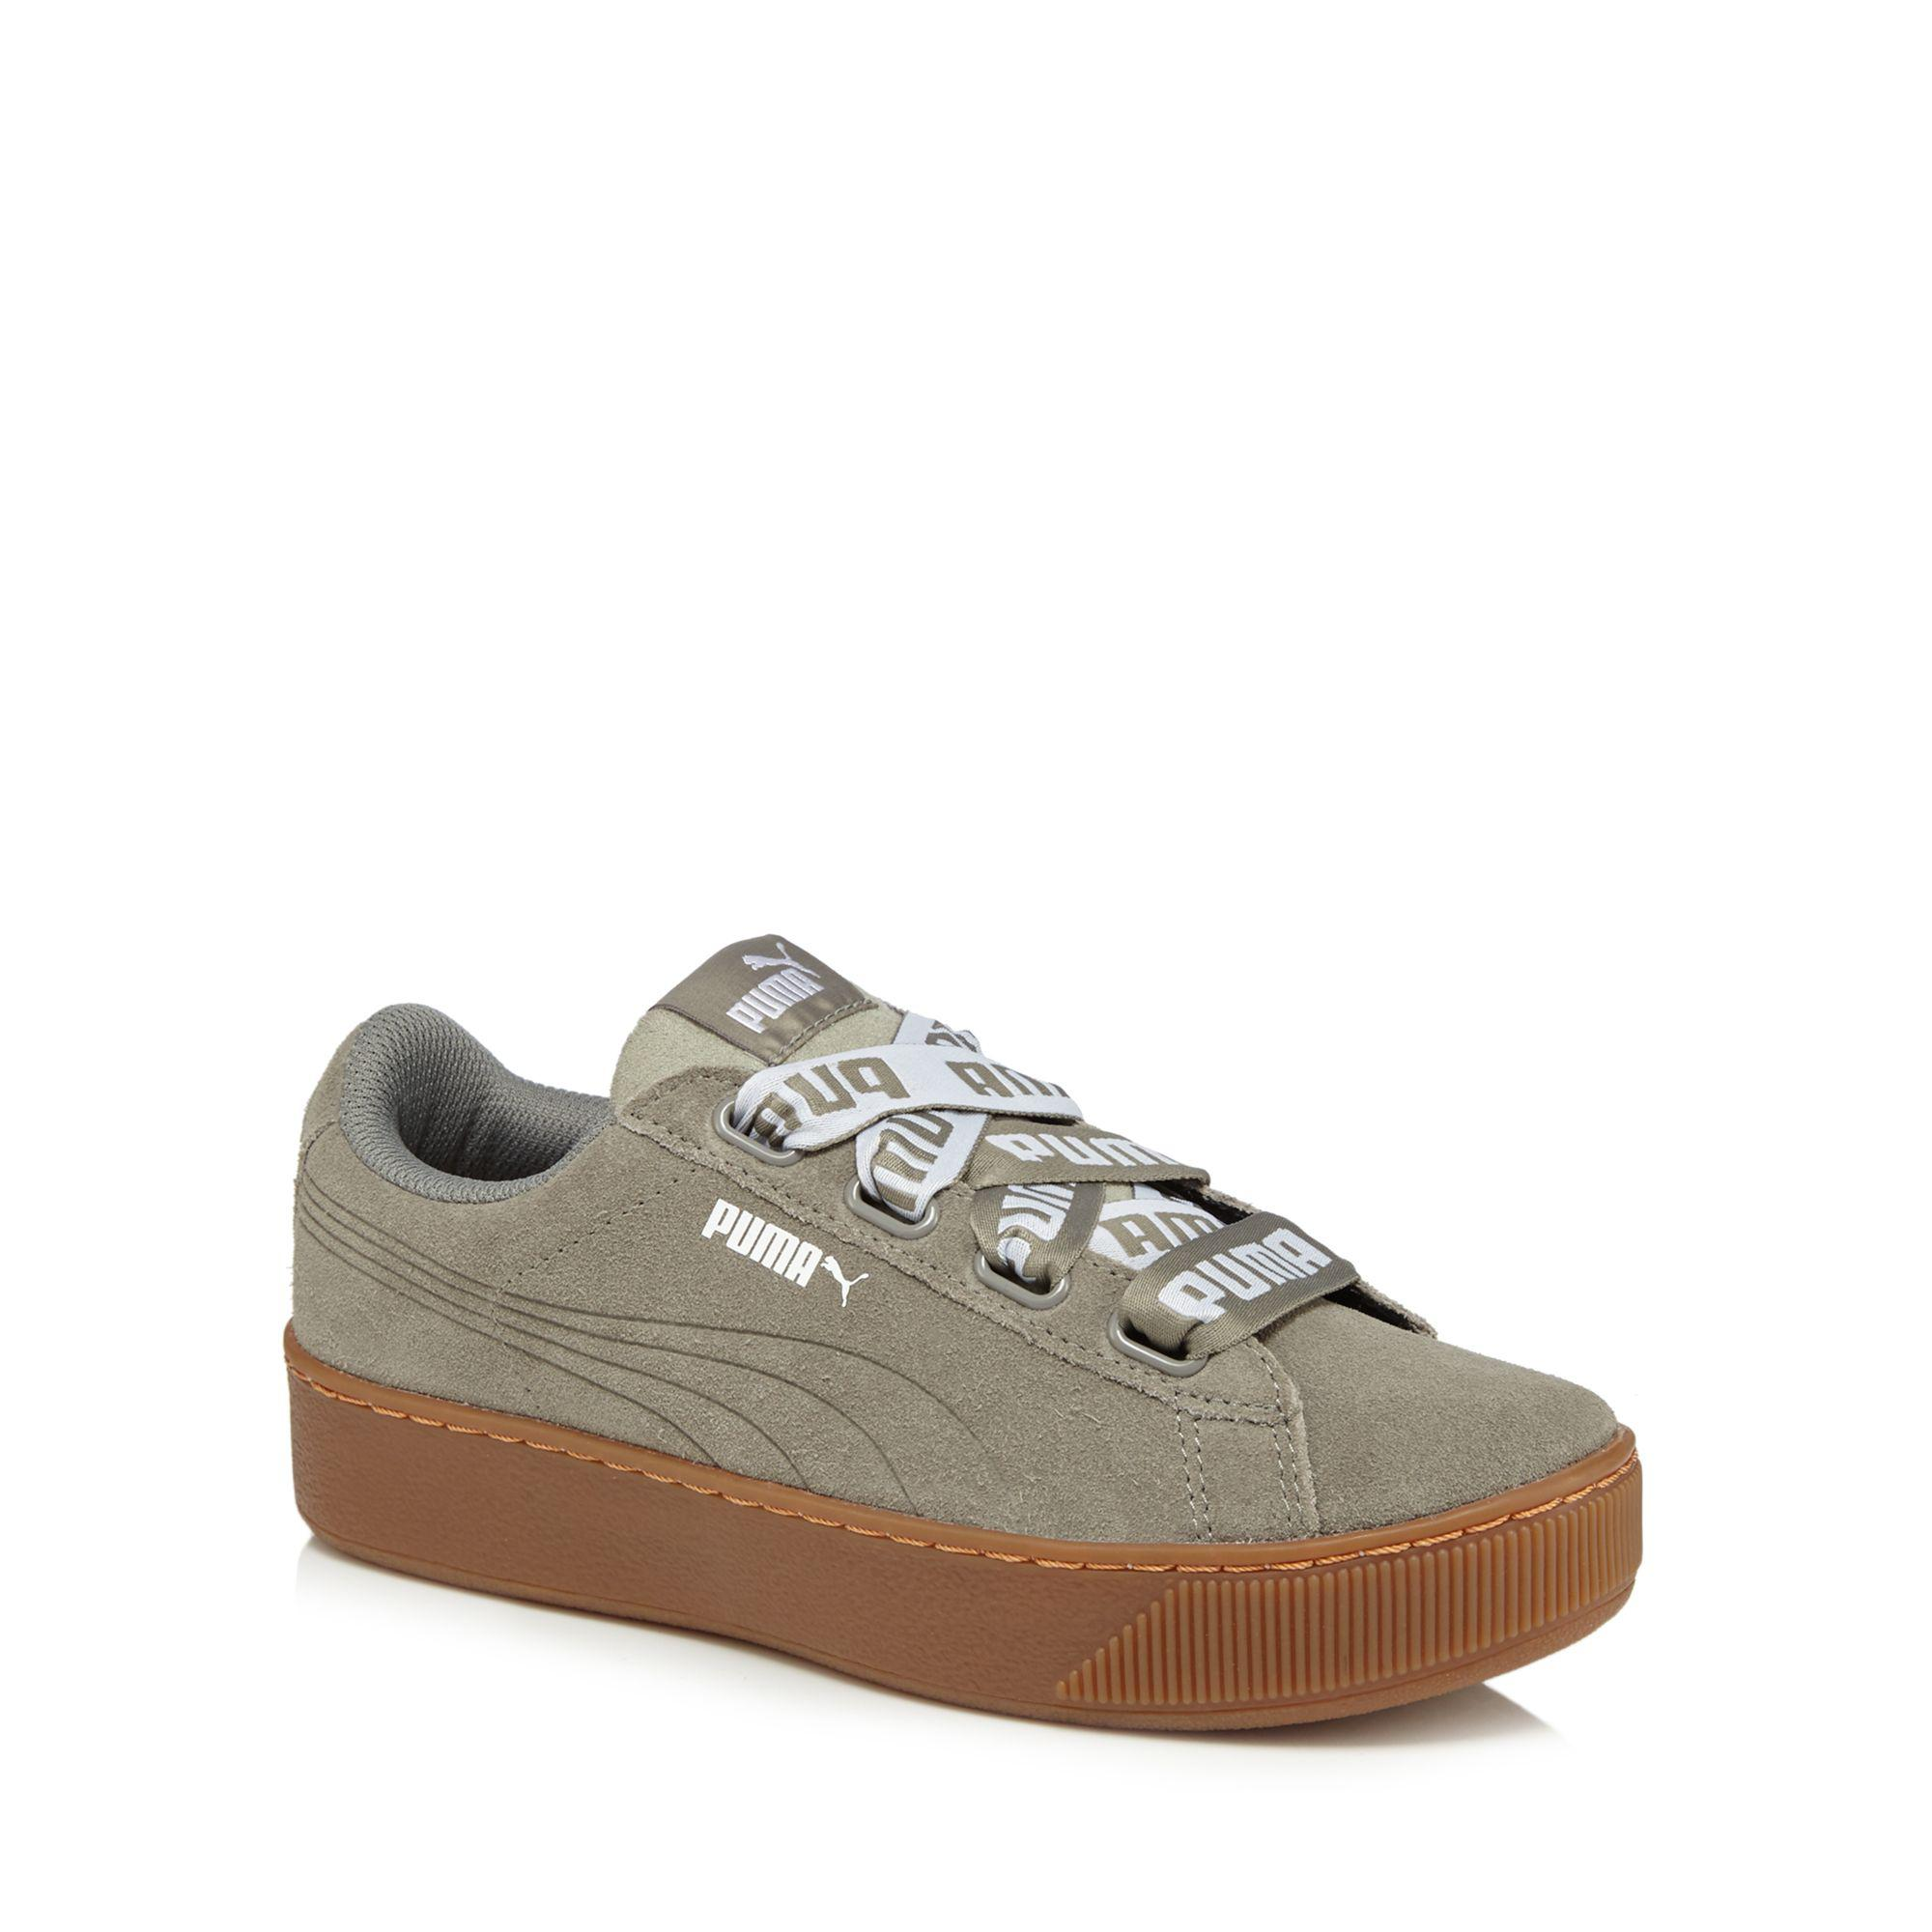 free shipping real Khaki leather 'Vikky' mid flatform heel trainers clearance view clearance looking for with paypal free shipping kFQjgxFKL